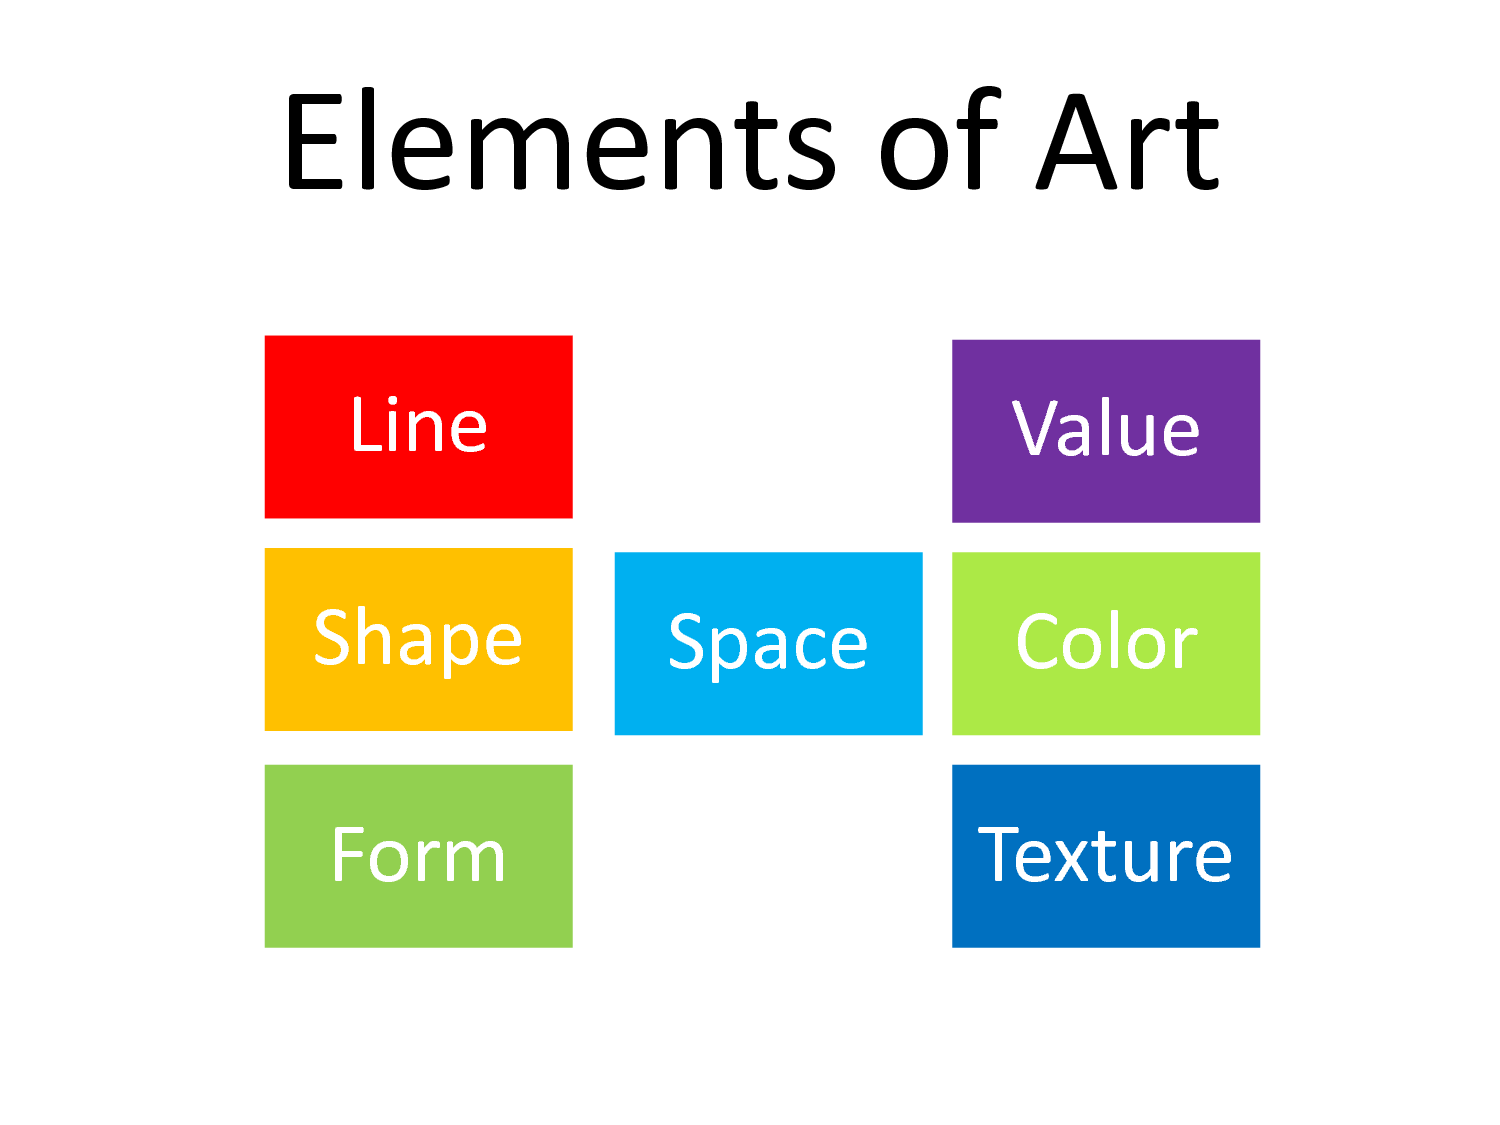 Name The Elements Of Art : Basic visual elements arts eso